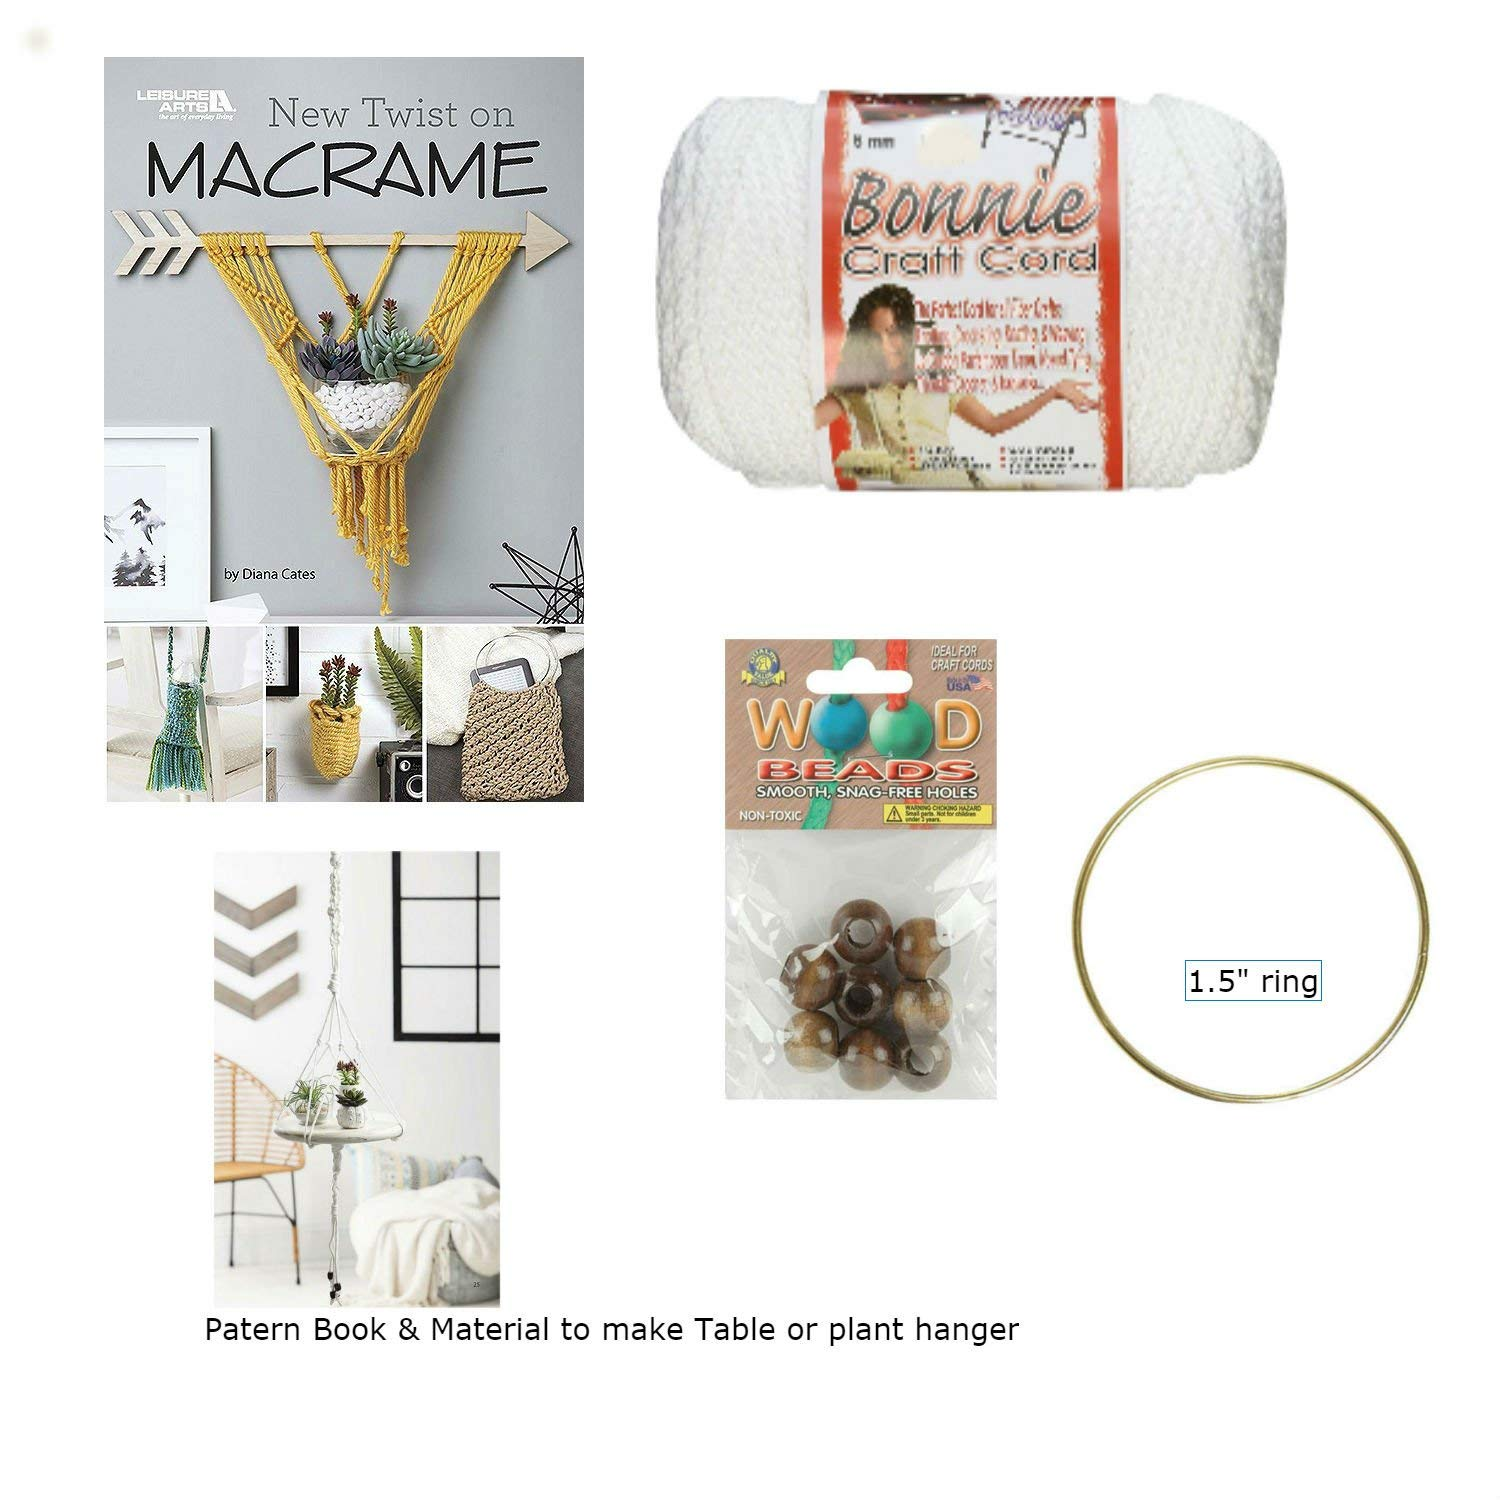 "Macrame kit Bundle for Hanging Table or Plant Hanger with Macrame Cord, Wooden Beads, Brass Rings, and ""The New Twist on Macrame"" Booklet"